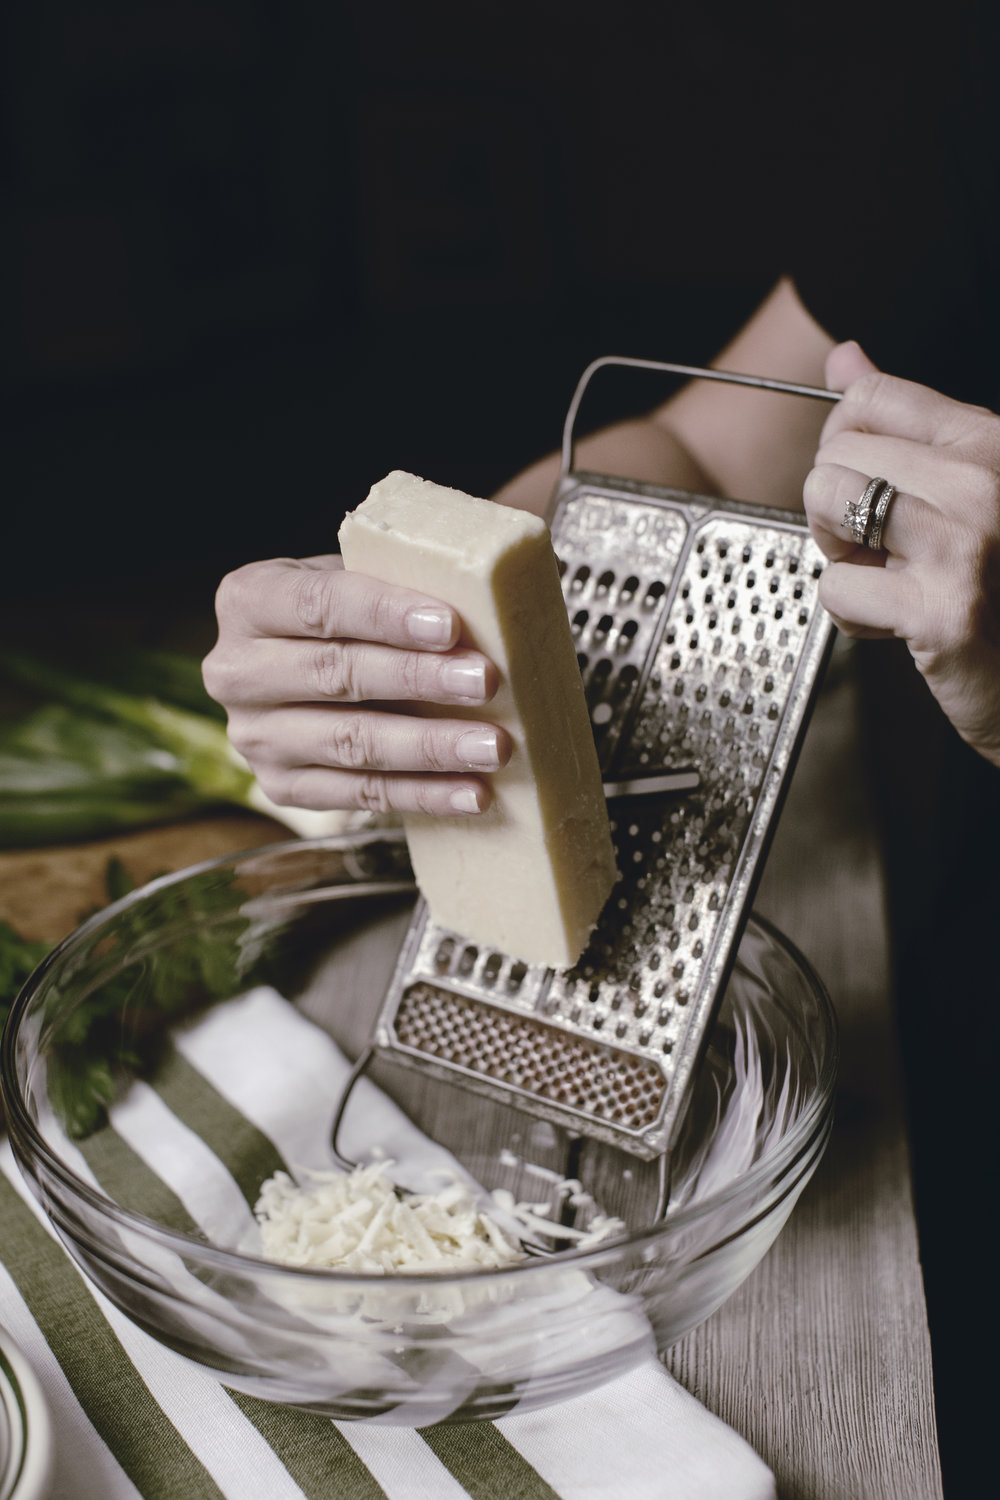 white cheddar with cheese grater